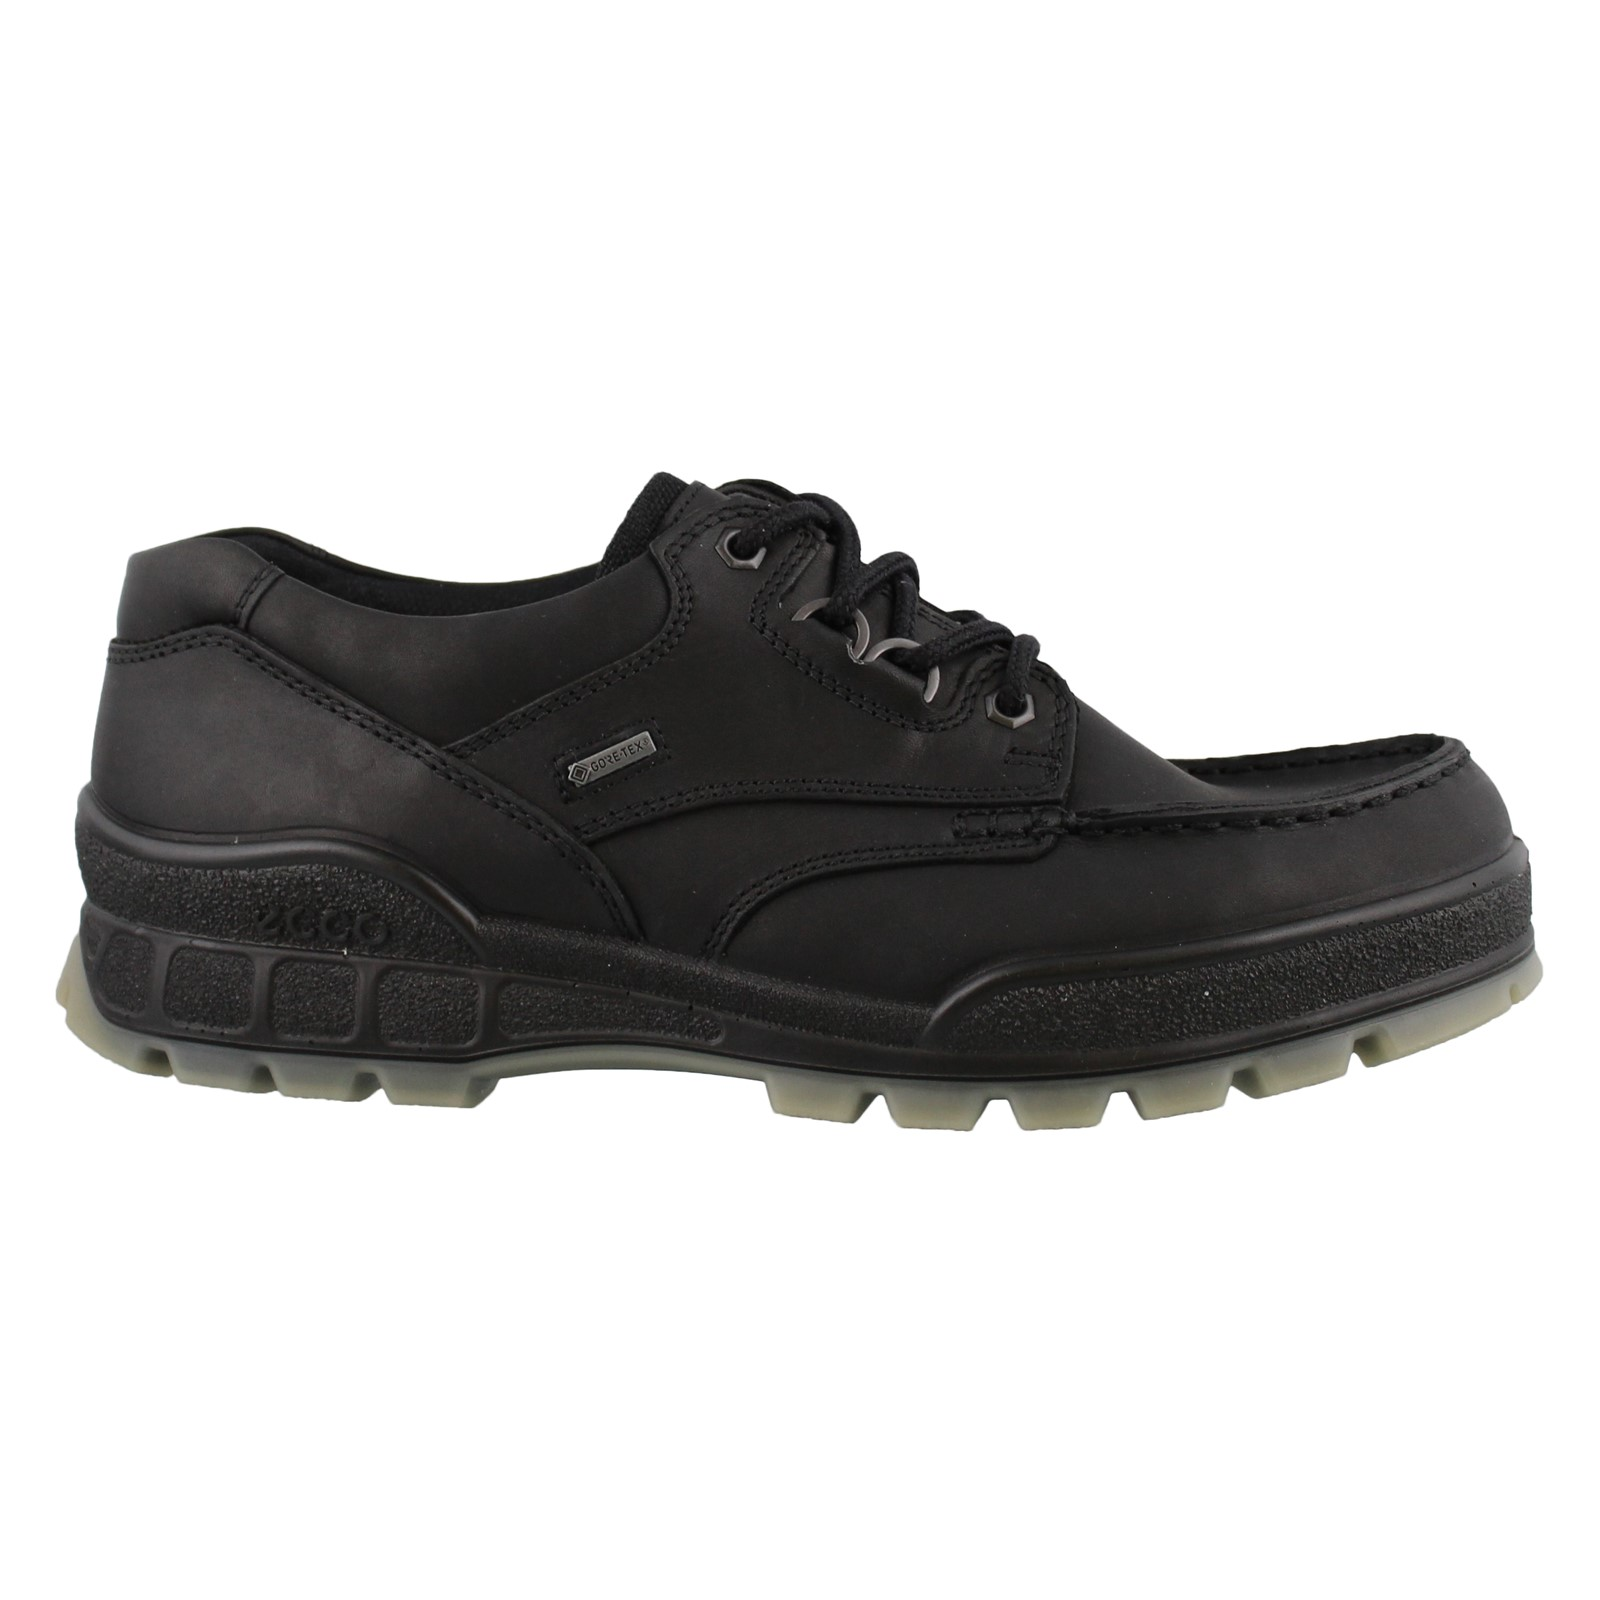 Men's Ecco, Track 2 Low